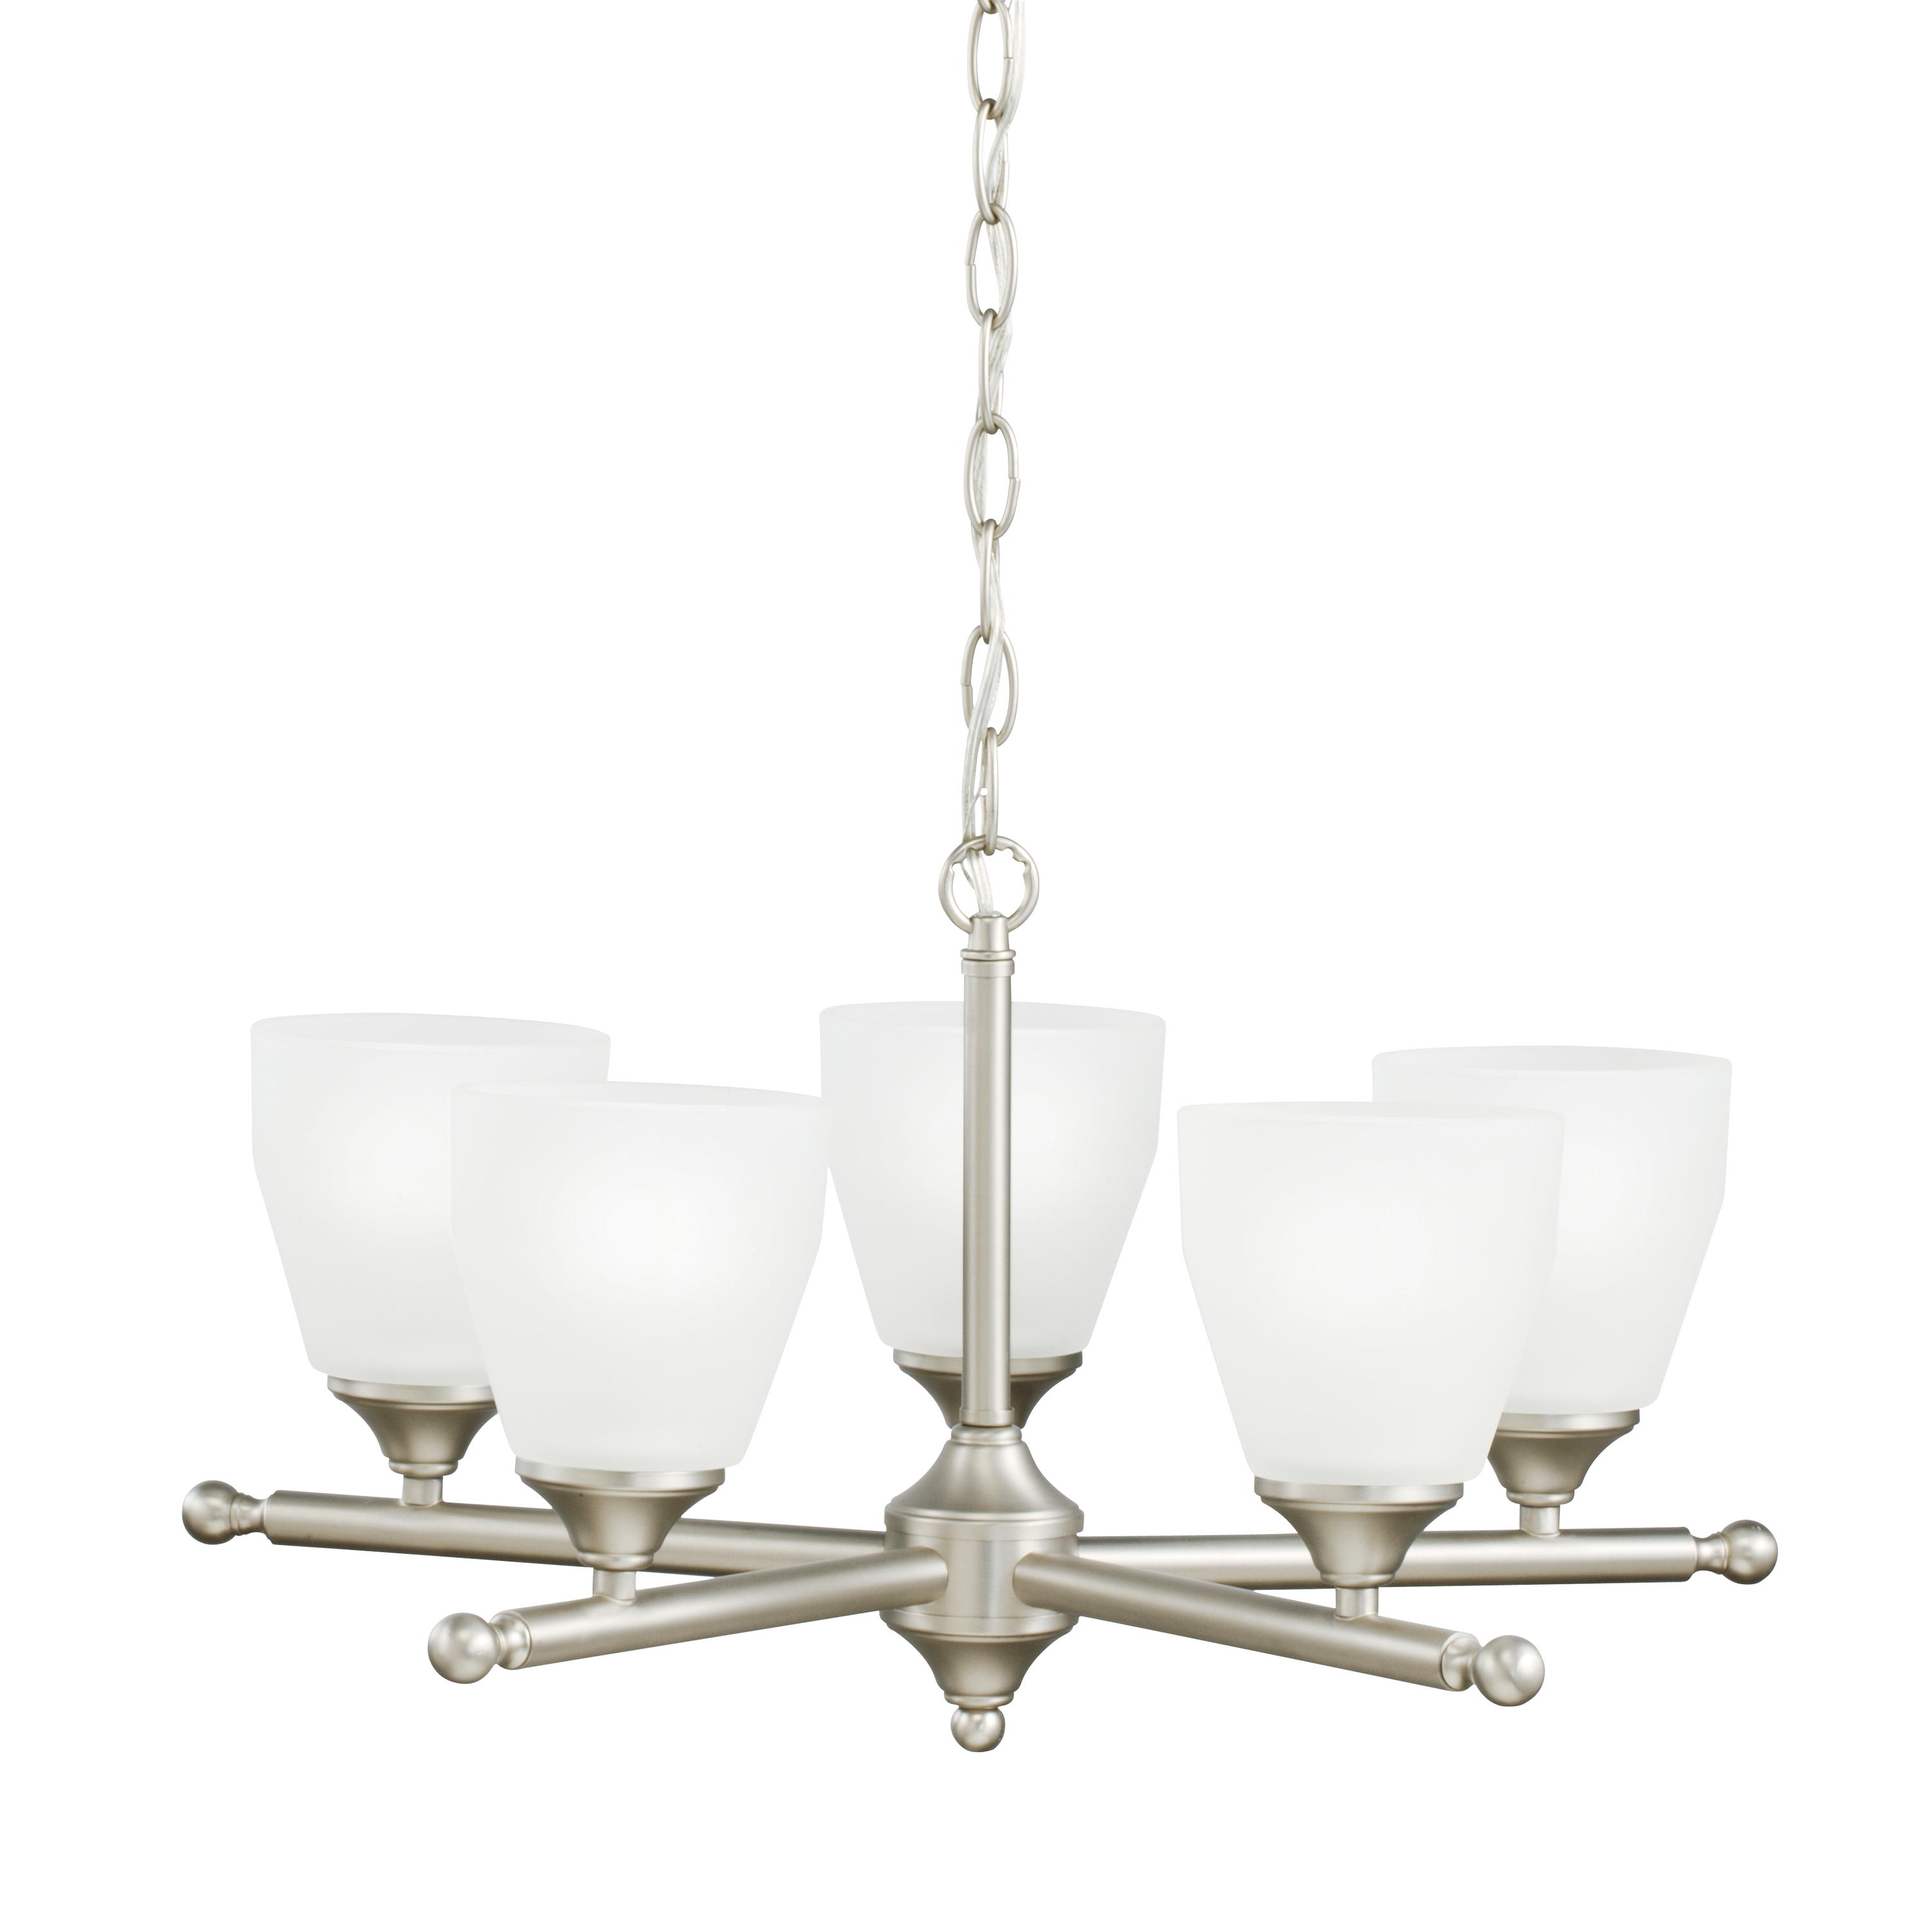 Kichler Ansonia Chandelier with Satin Etched Shade - Brushed Nickel (1748NI)